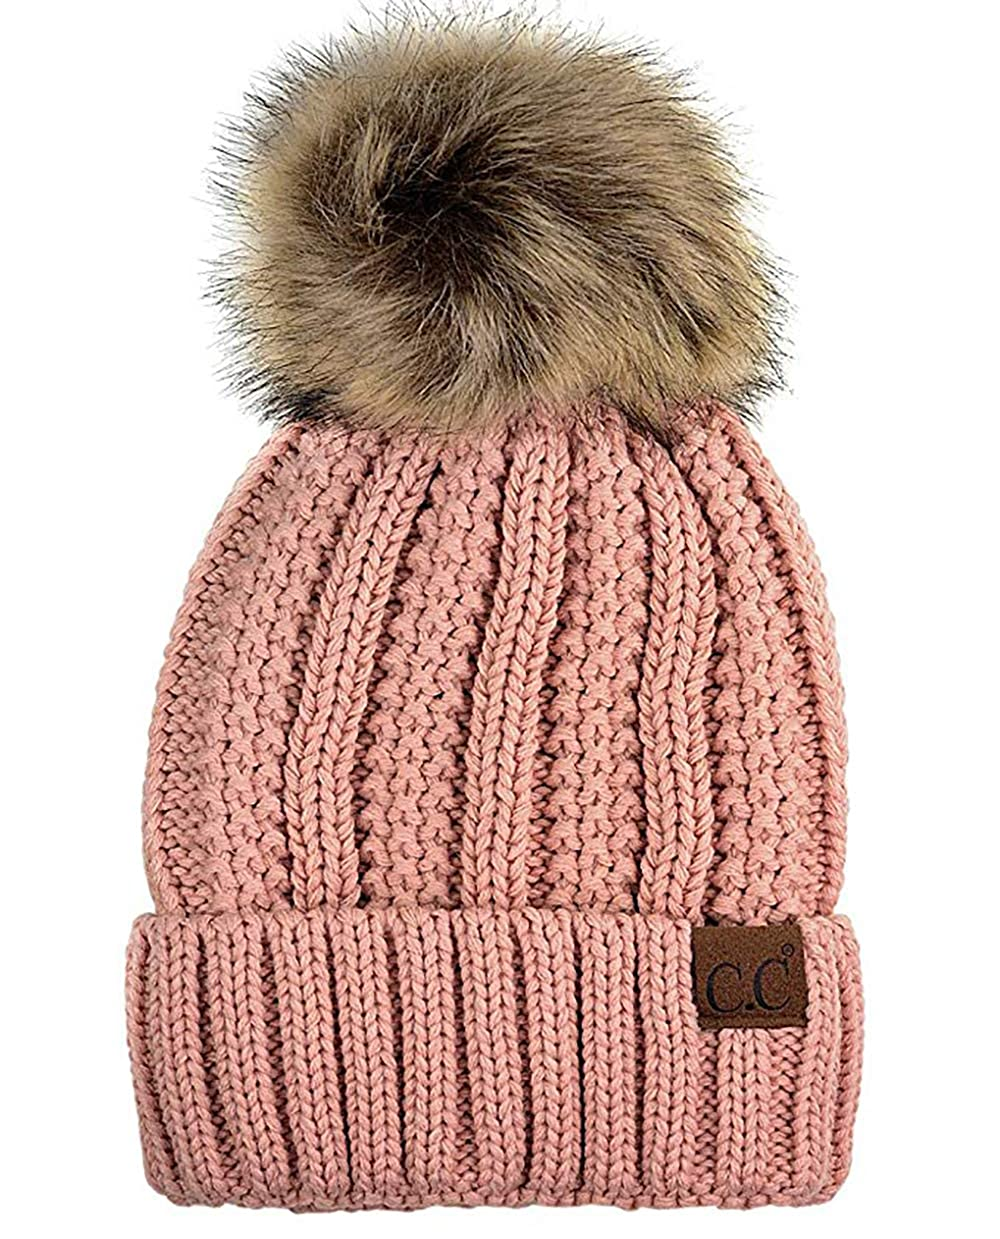 163fcfb56 CC Quality Women's Faux Fur Pom Fuzzy Fleece Lined Slouchy Skull Thick  Cable Beanie hat